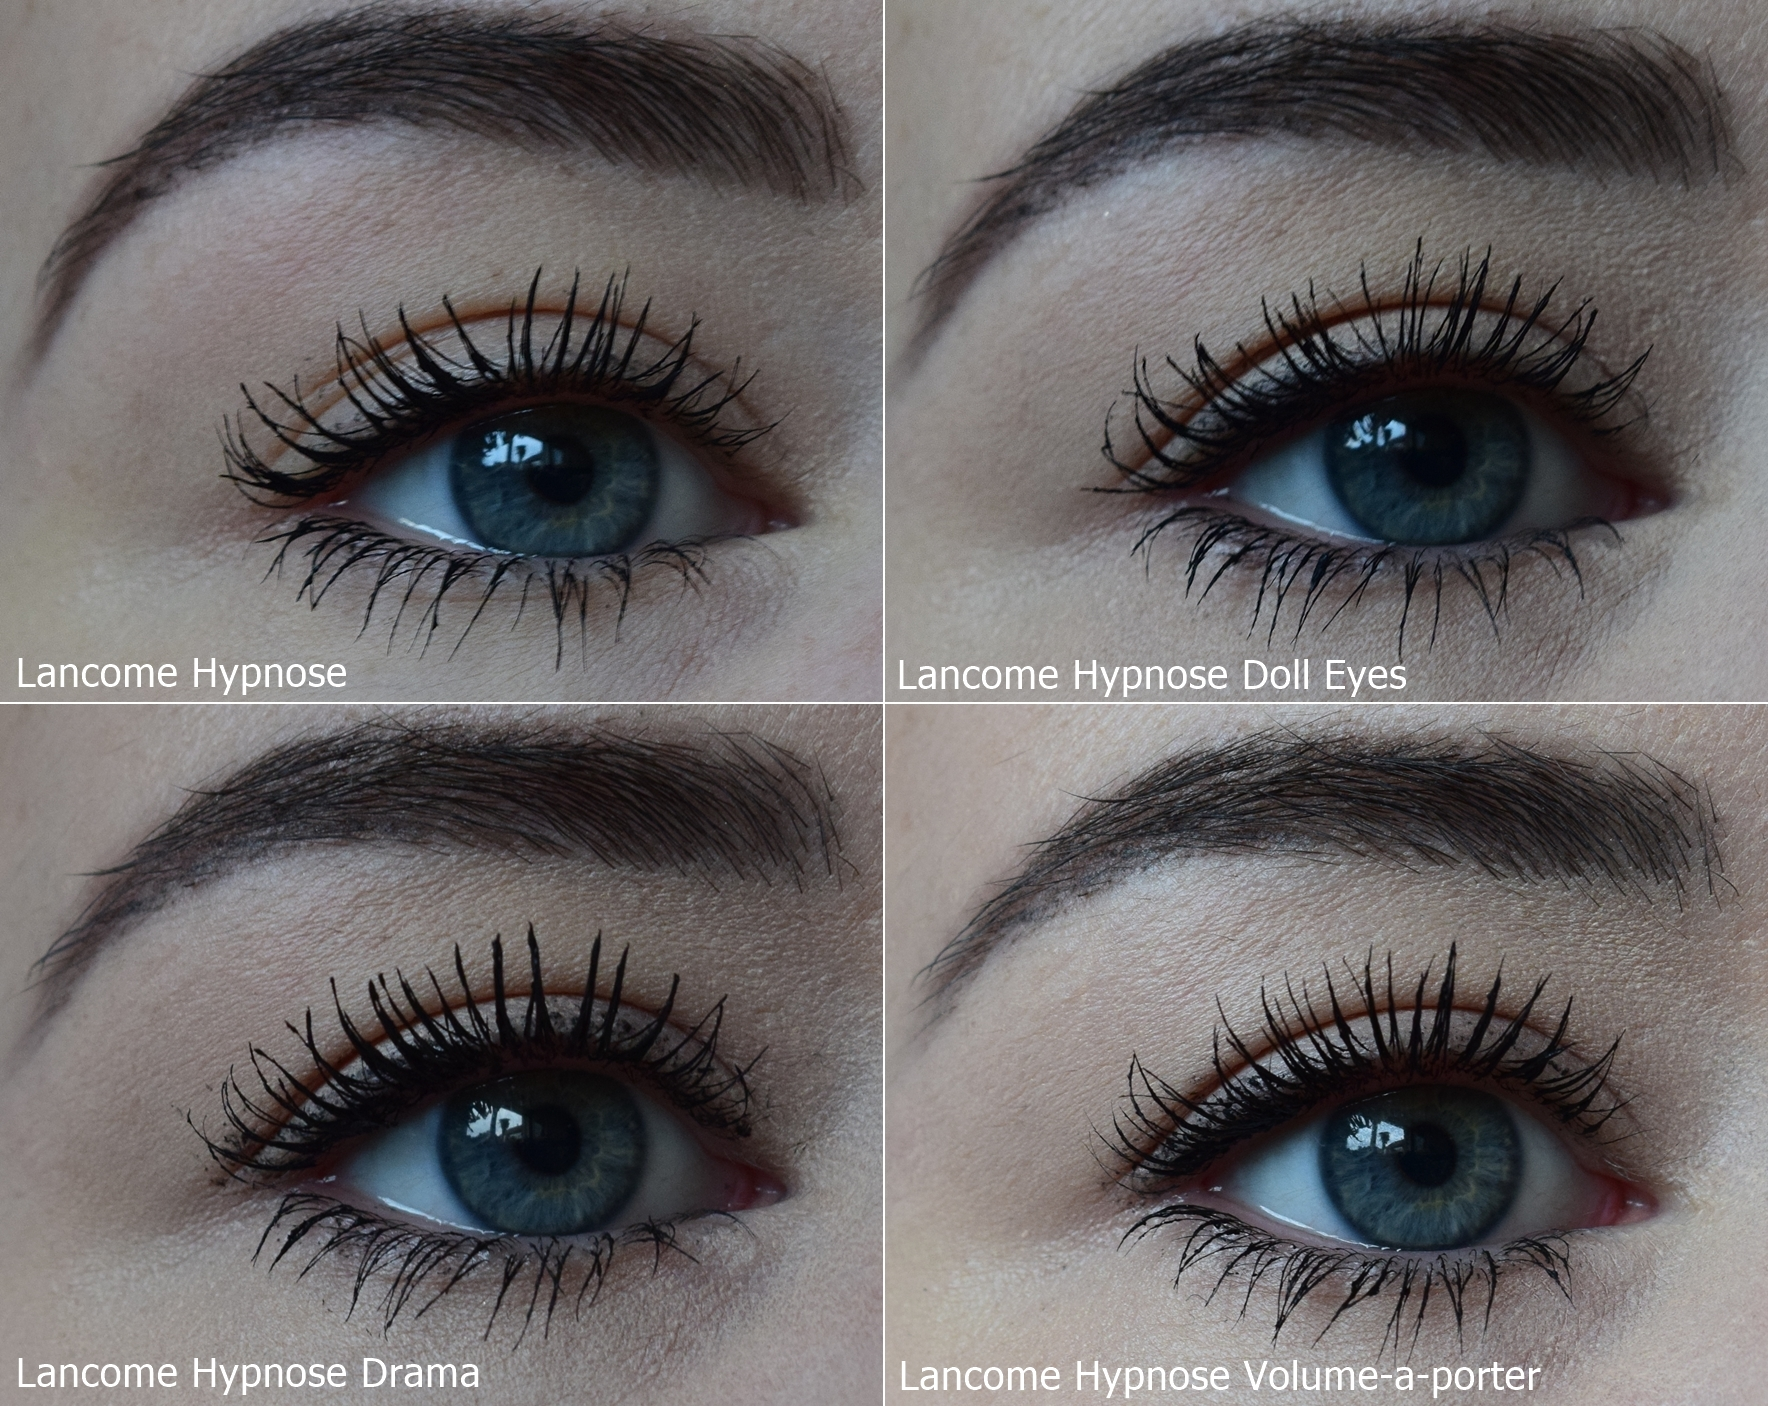 LANCOME, LANCOME Hypnose Doll Eyes Mascara, LANCOME Hypnose Doll Eyes Mascara So Black, LANCOME Hypnose Doll Eyes Mascara So Black รีวิว, LANCOME Hypnose Doll Eyes Mascara So Black ราคา, LANCOME Hypnose Doll Eyes Mascara So Black 2 ml.,